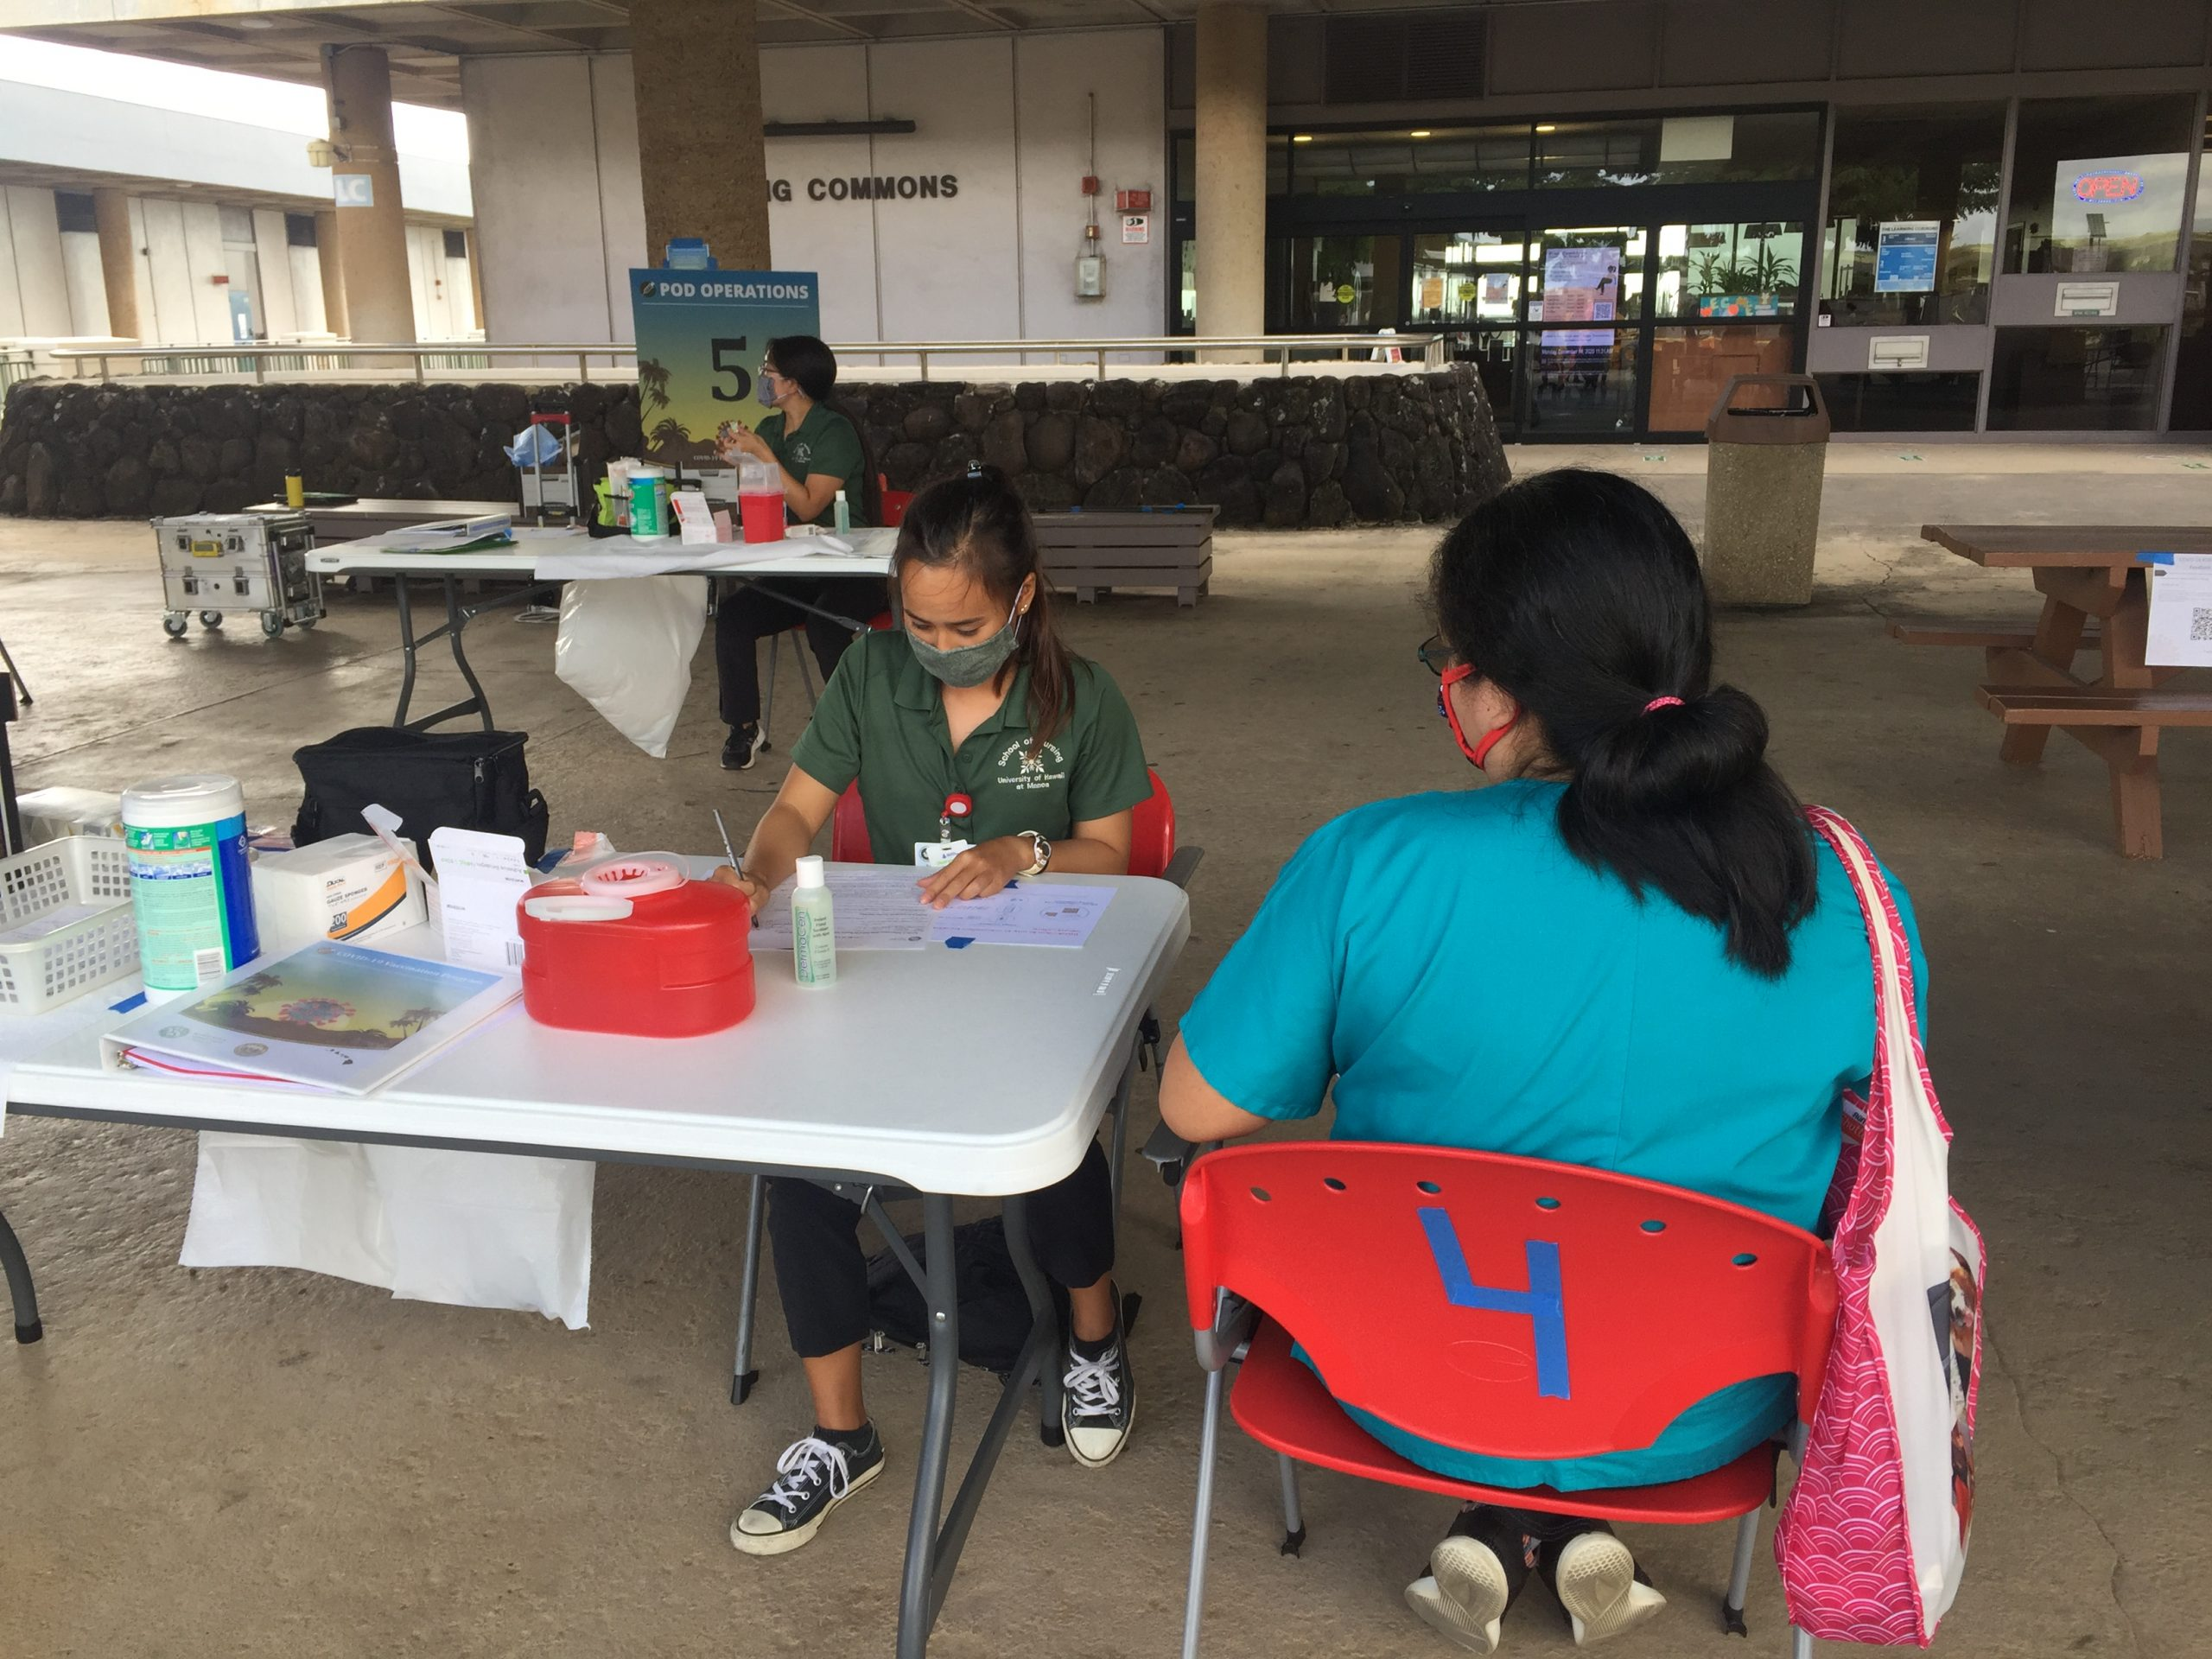 Uh Manoa Nursing Students Participate In The First Doh Covid 19 Vaccine Pod Exercise Drill School Of Nursing And Dental Hygiene